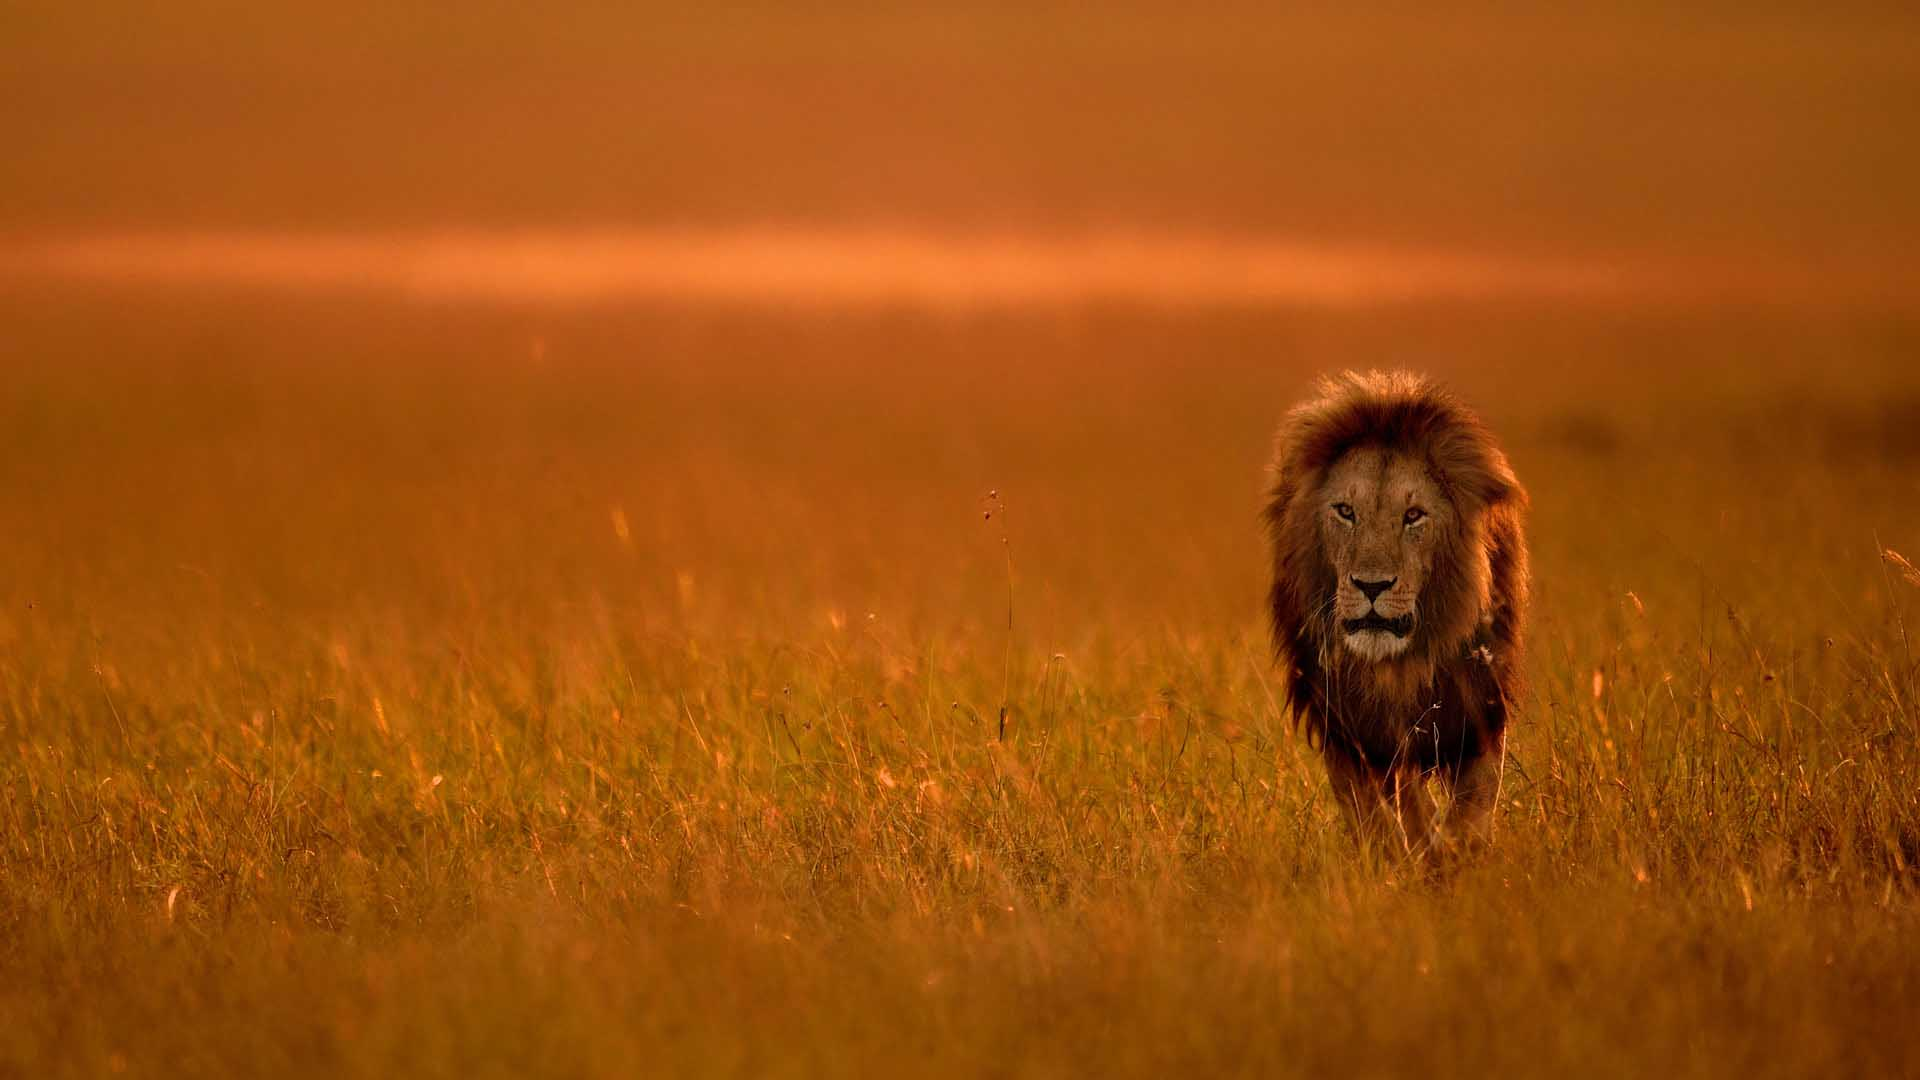 Male lion in Kenya